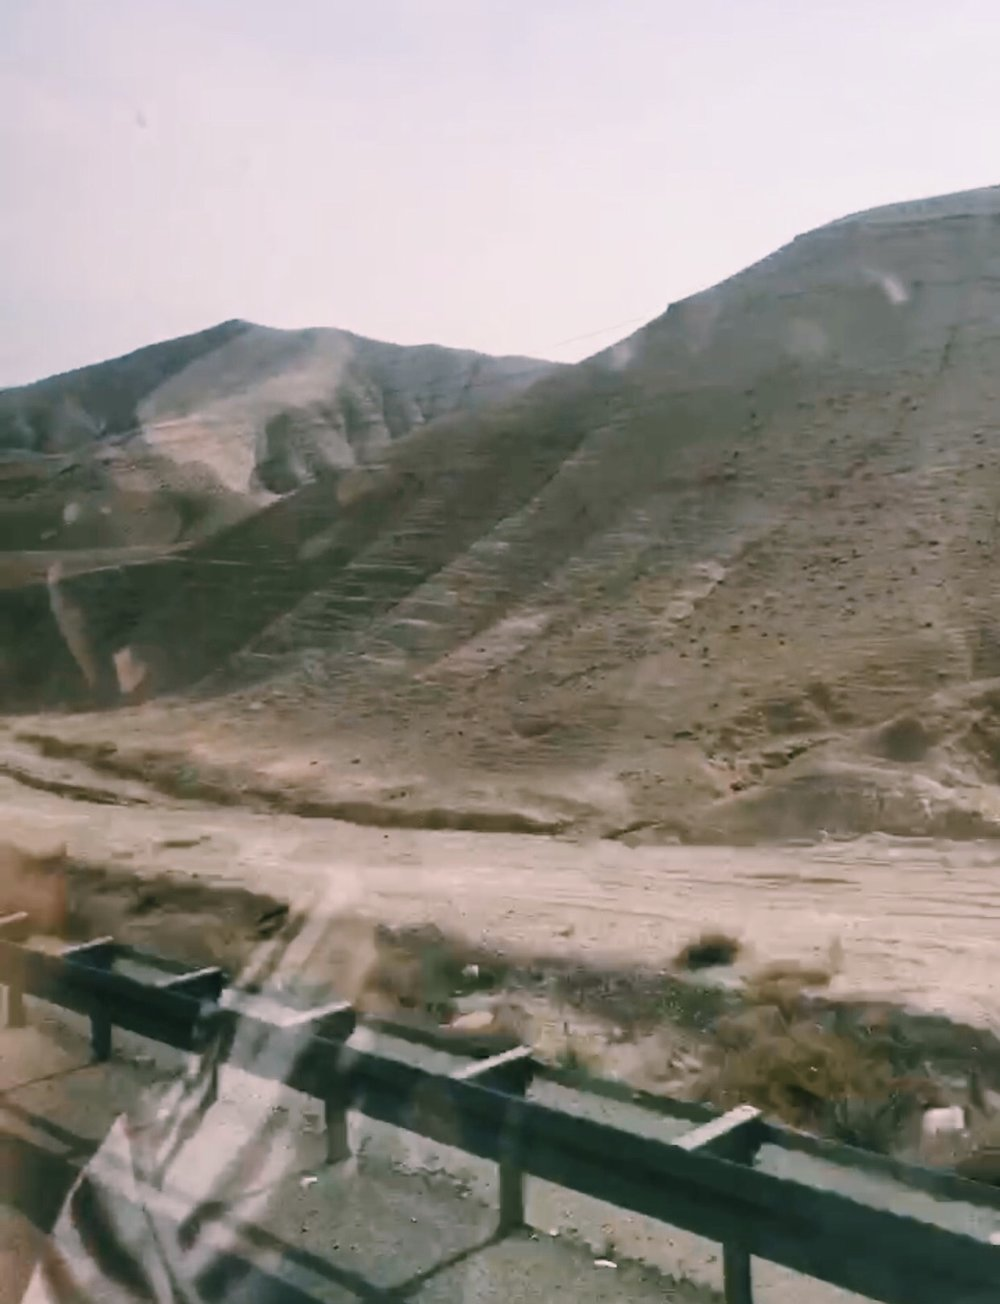 en route to the Dead Sea, descending 400 meters through the  Judaean desert